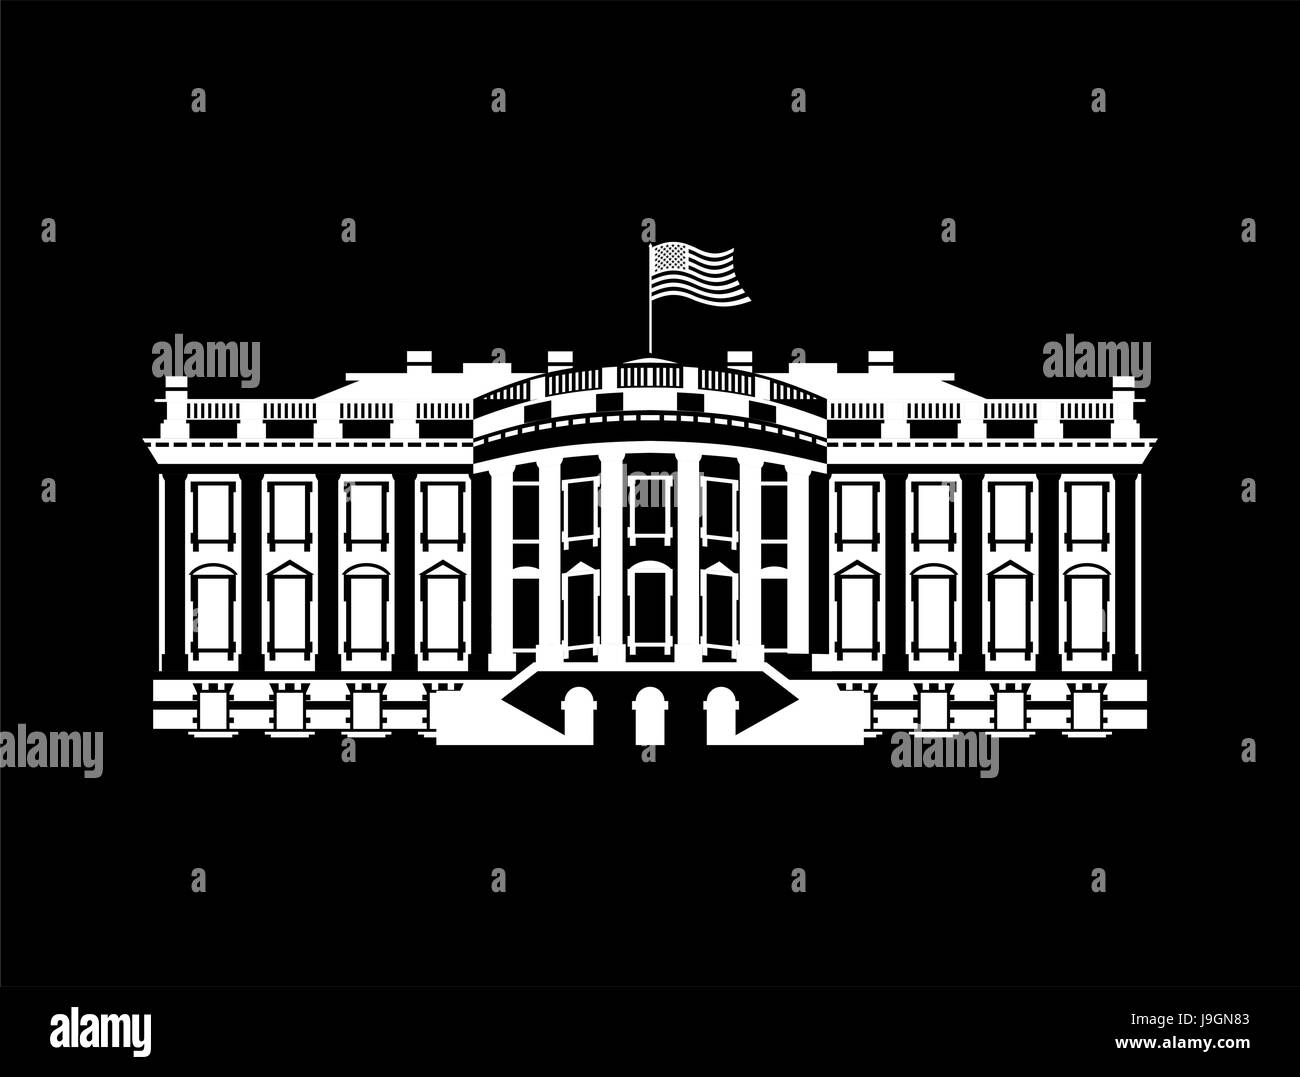 US White House sign icon. America government building. mansion President. USA political landmark - Stock Vector